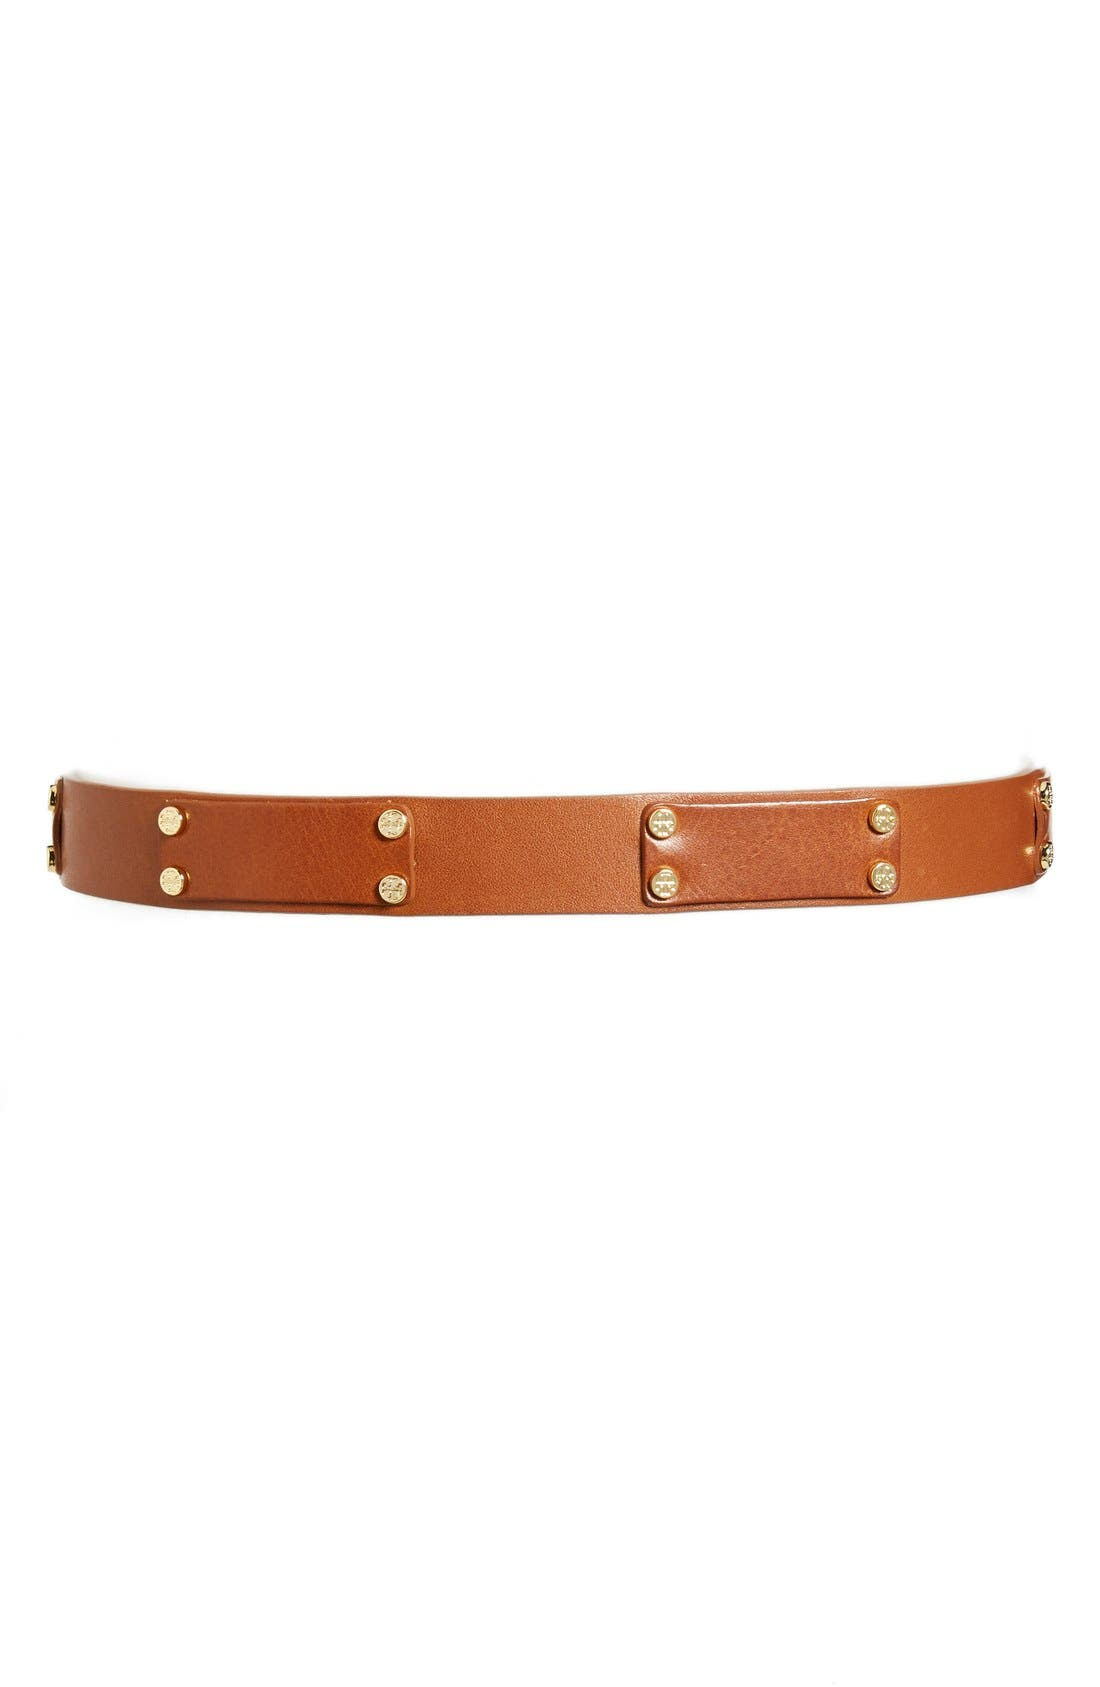 Alternate Image 2  - Tory Burch Leather Rivet Belt